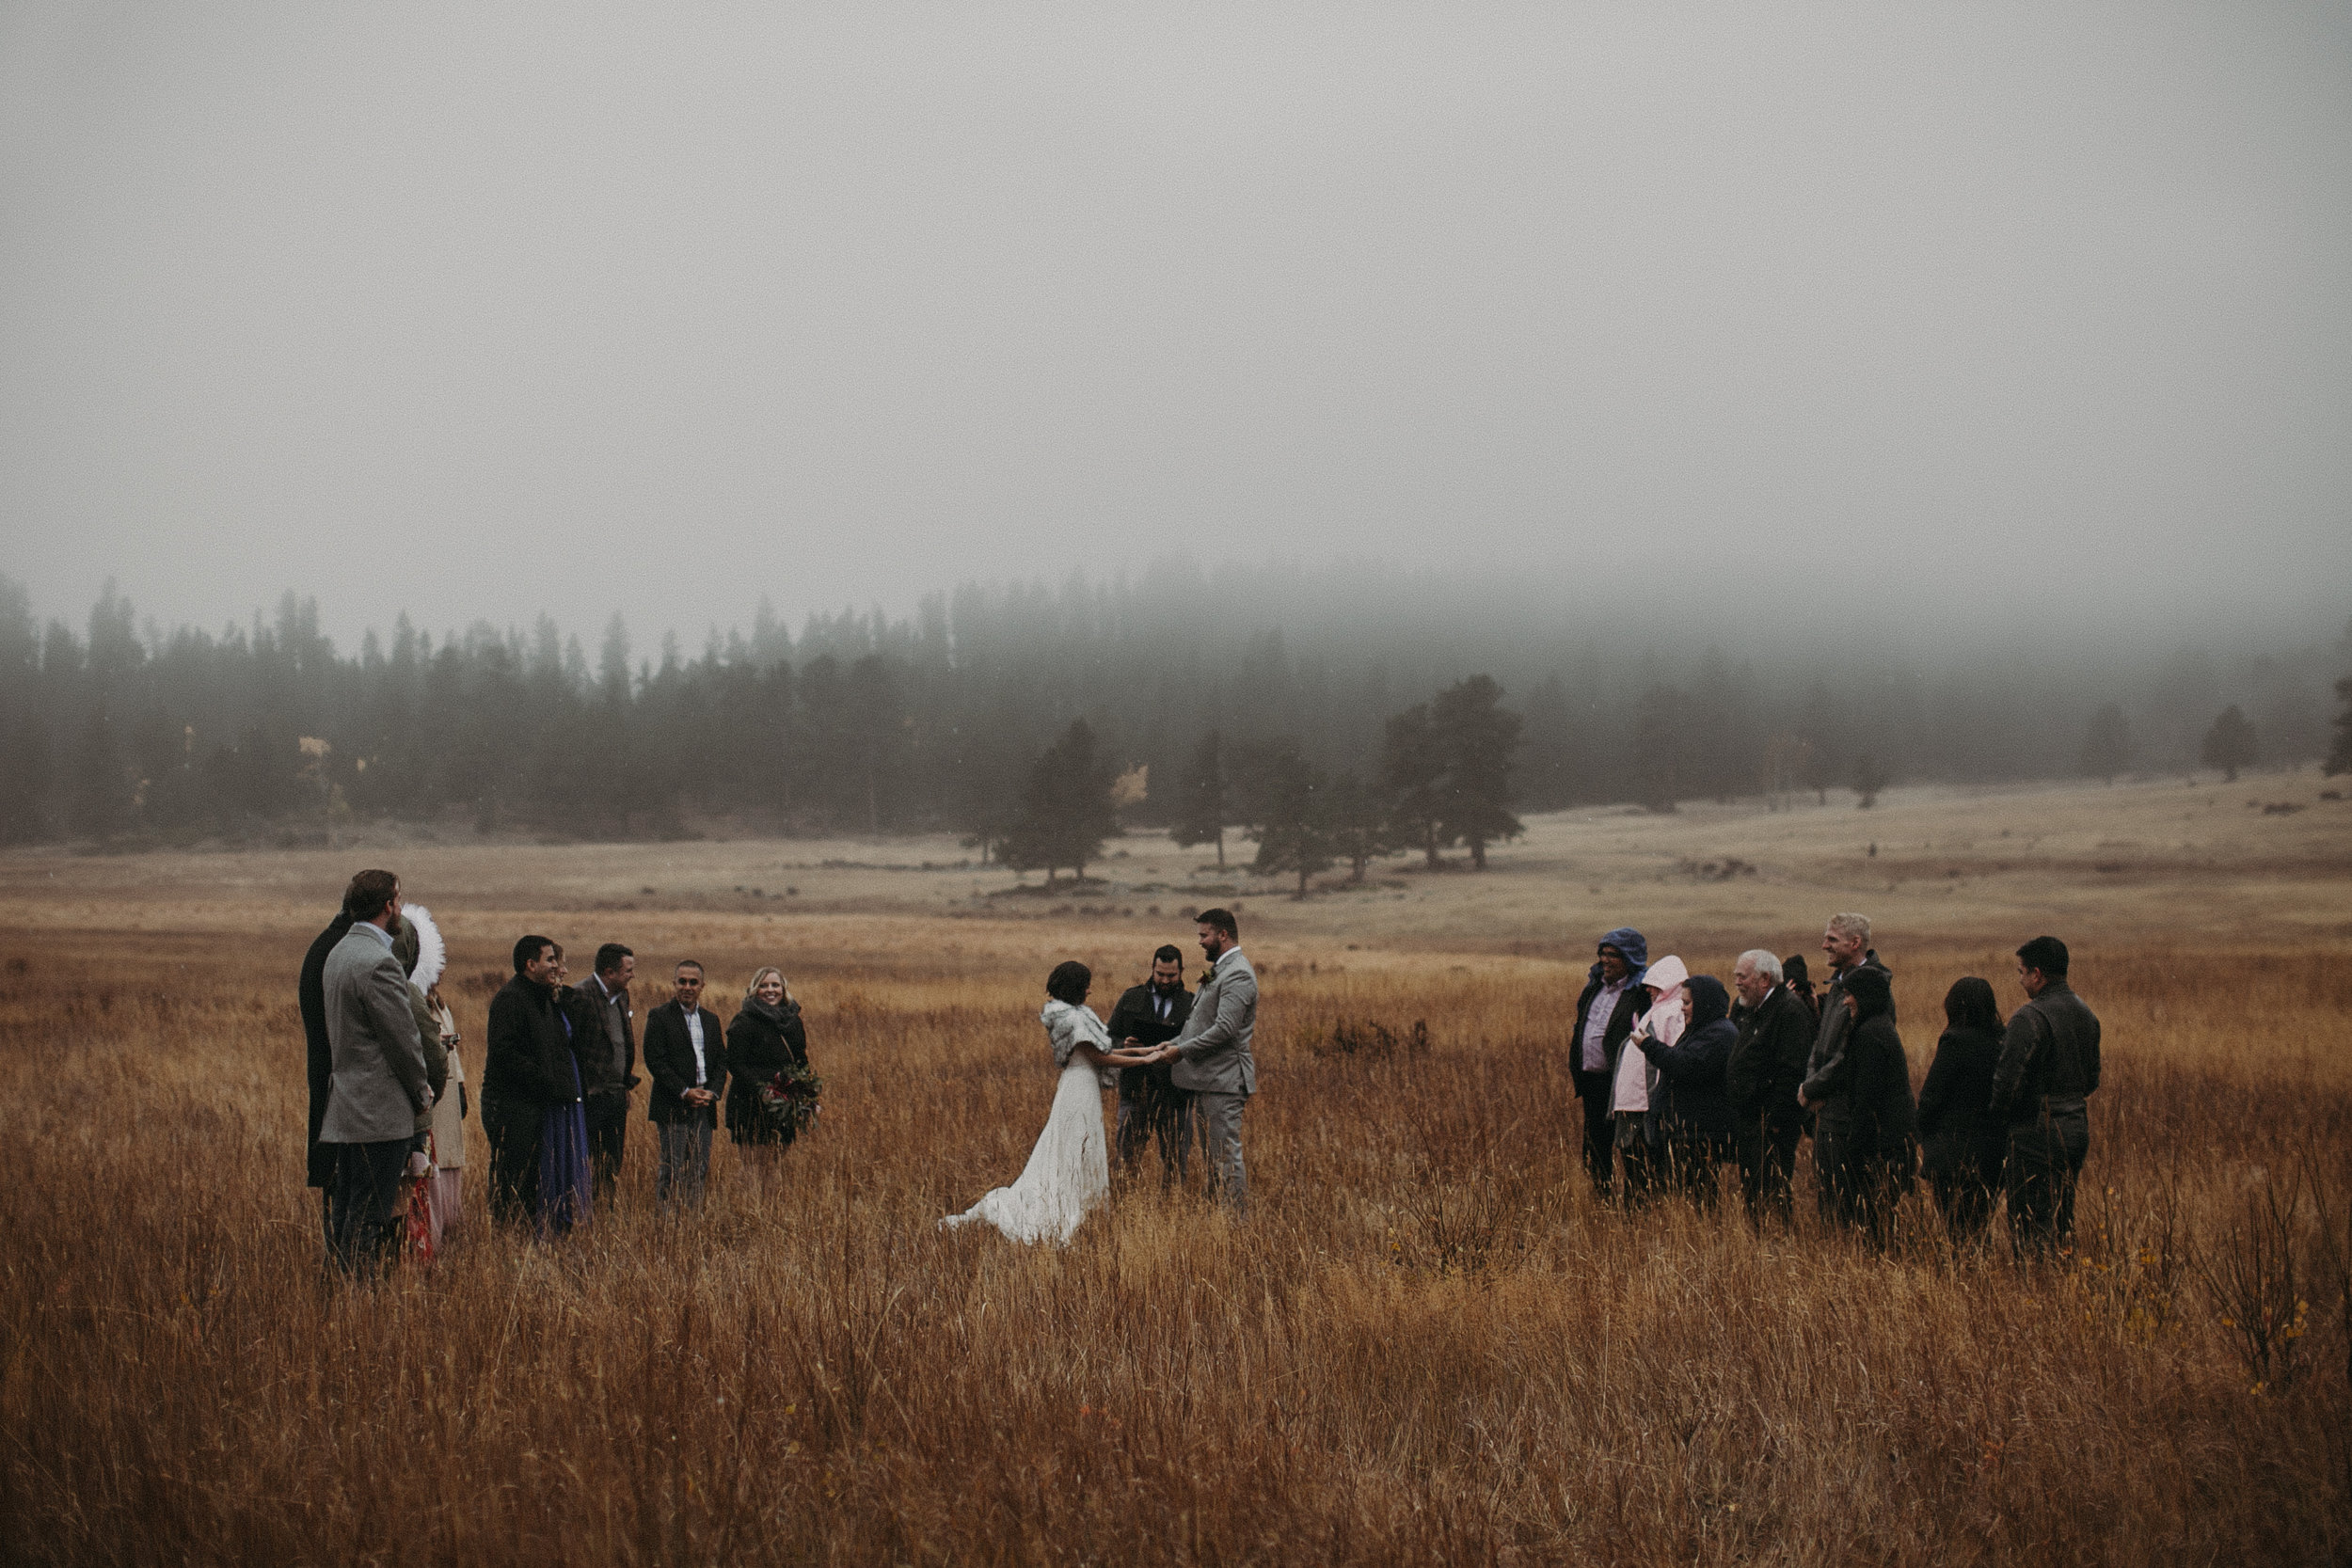 Intimate Foggy Wedding in Rocky mountain national park, cO -